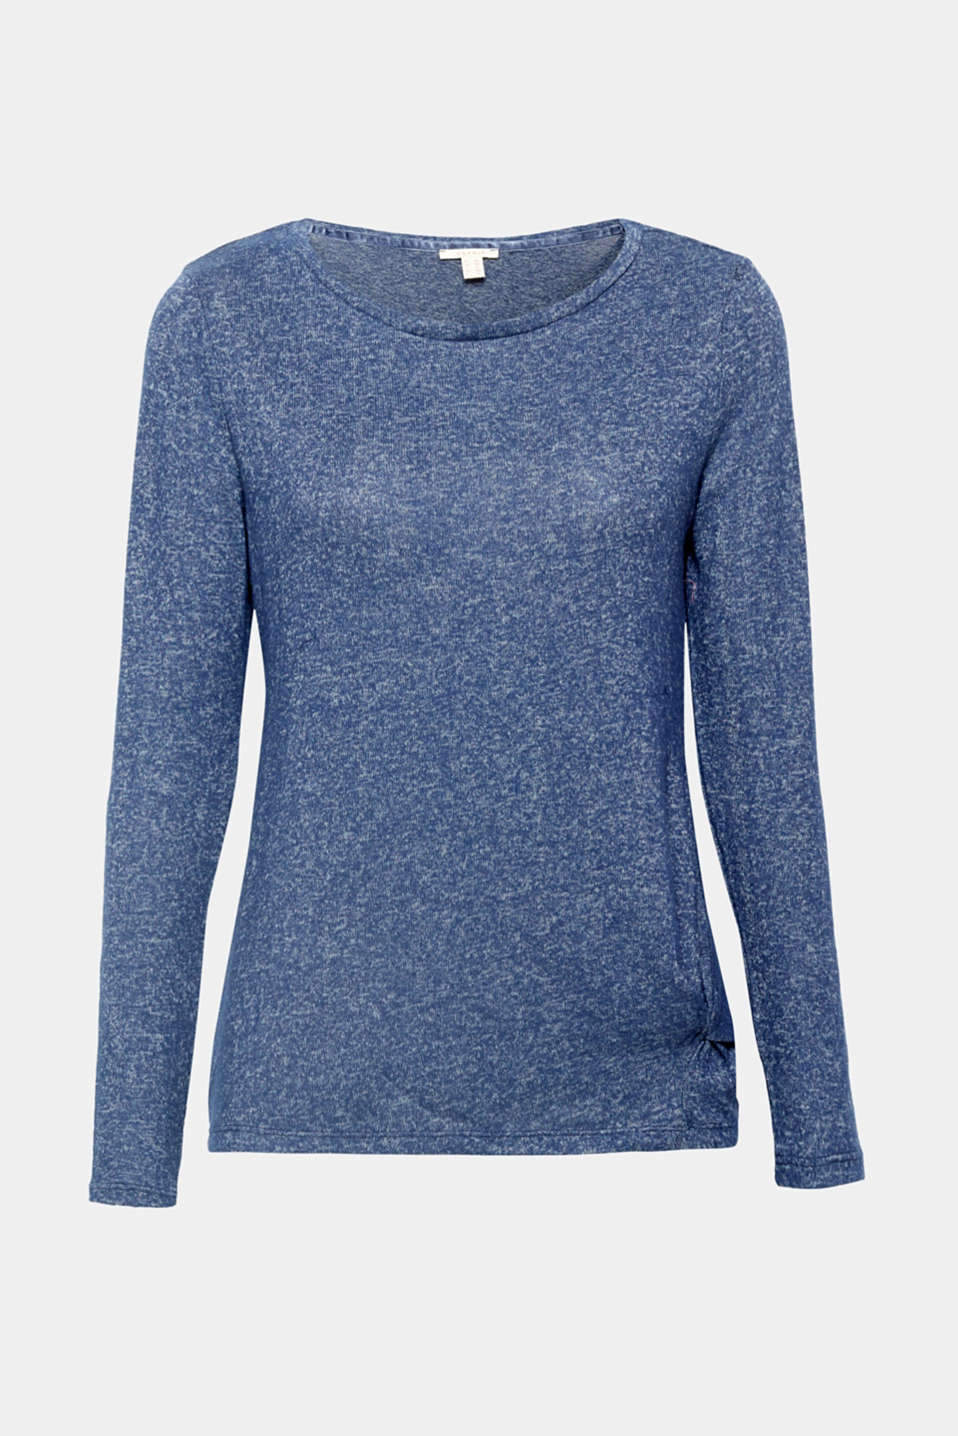 Super soft, fashionable melange finish, feminine draping: a knot detail on the side above the hem adds an additional fashion highlight to this cuddly, lightweight long sleeve top with a melange finish!